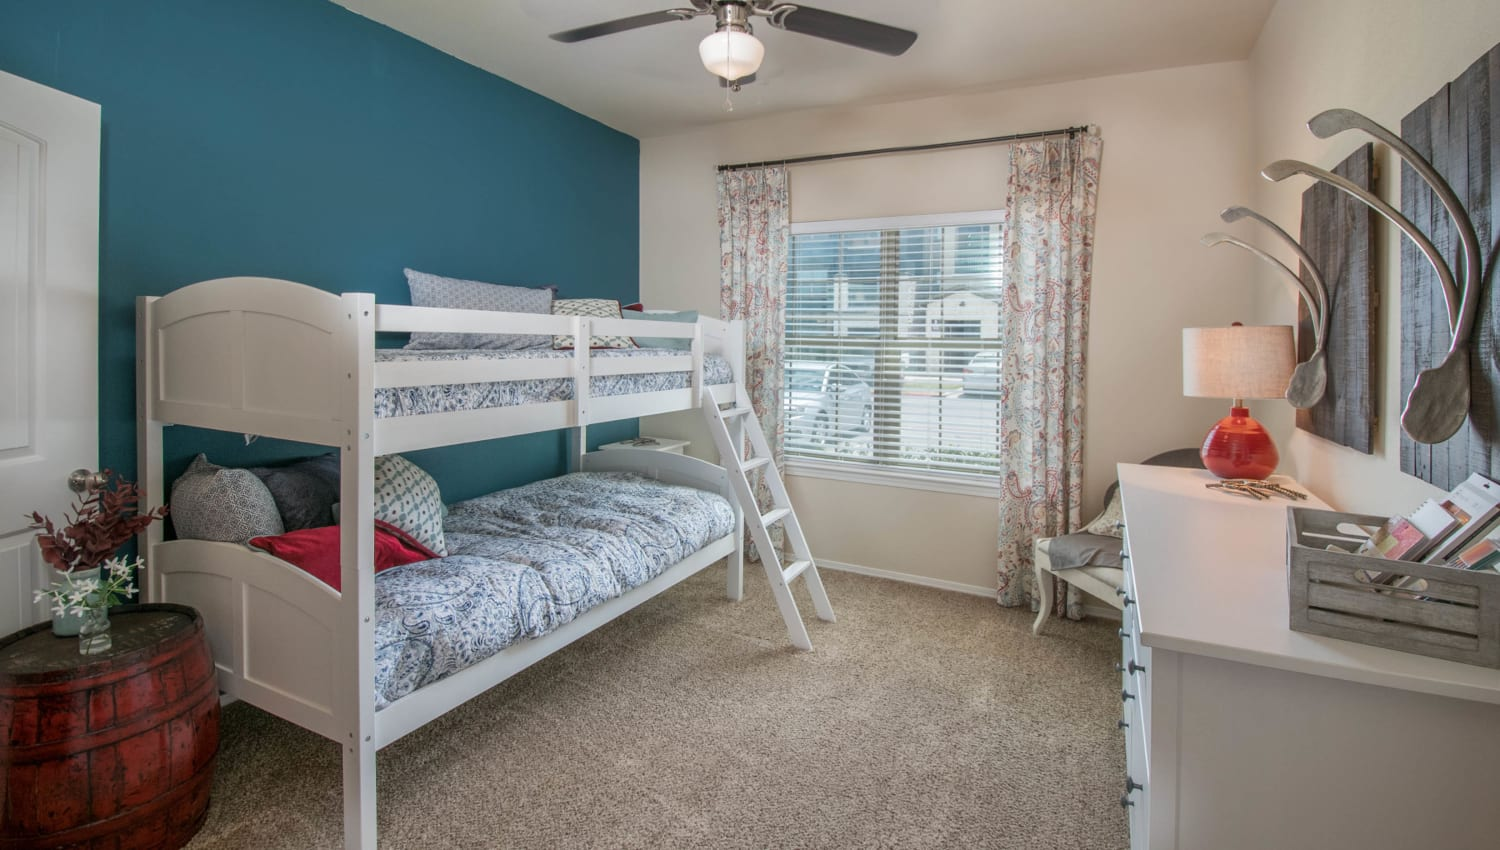 Child's bedroom with an accent wall and a ceiling fan in a model home at Carrington Oaks in Buda, Texas